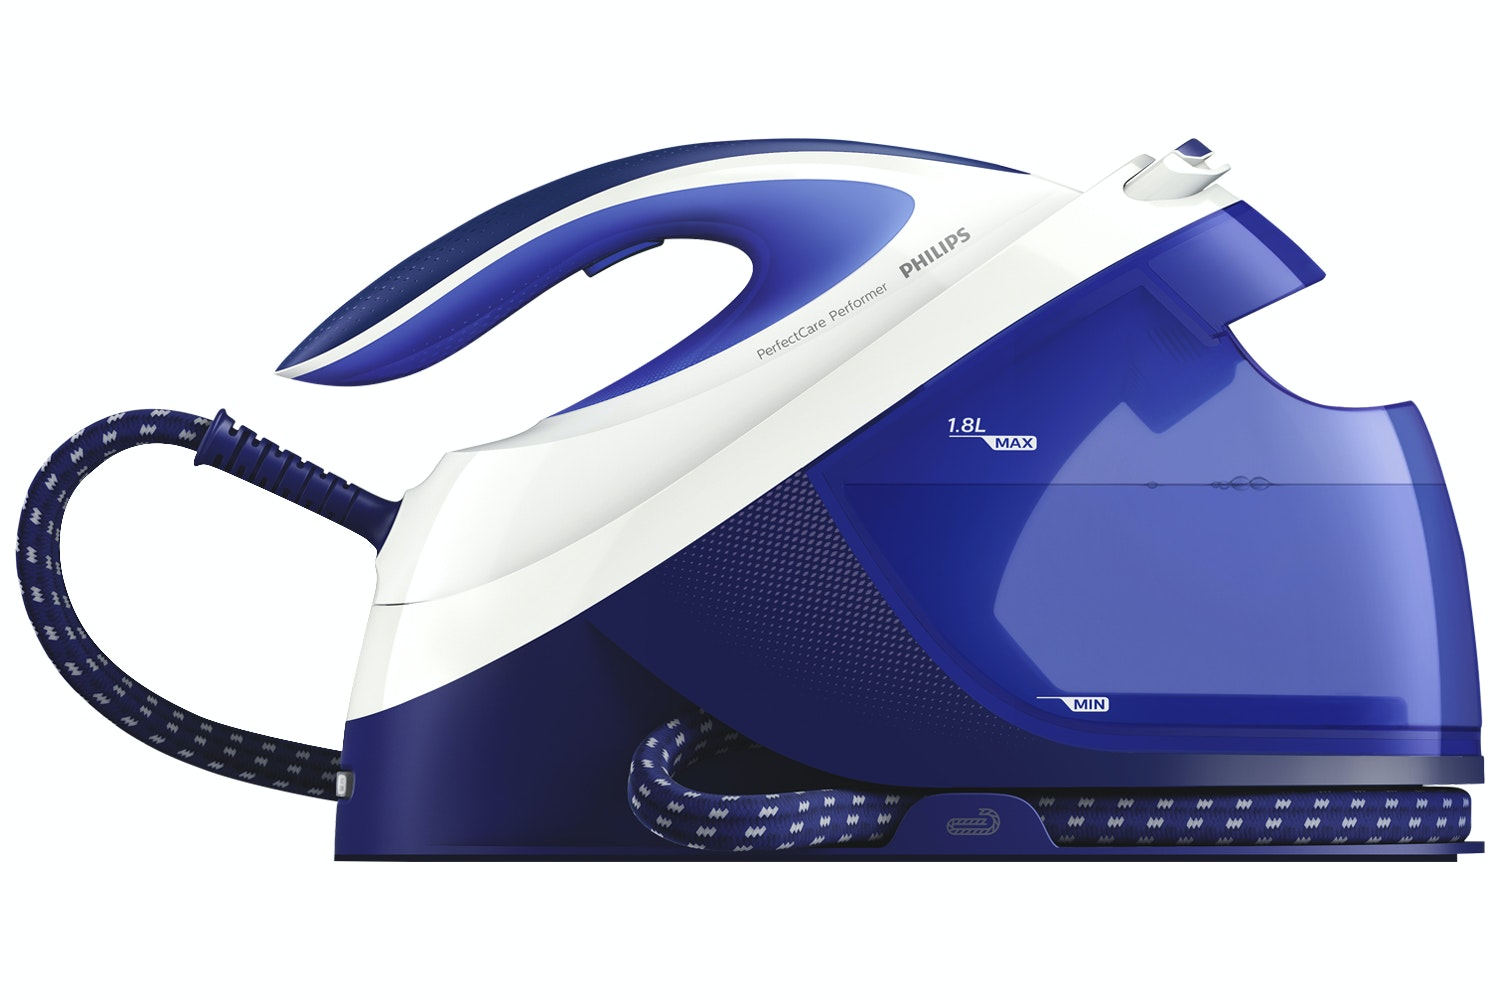 Philips PerfectCare Performer Steam Generator Iron | GC8733/20